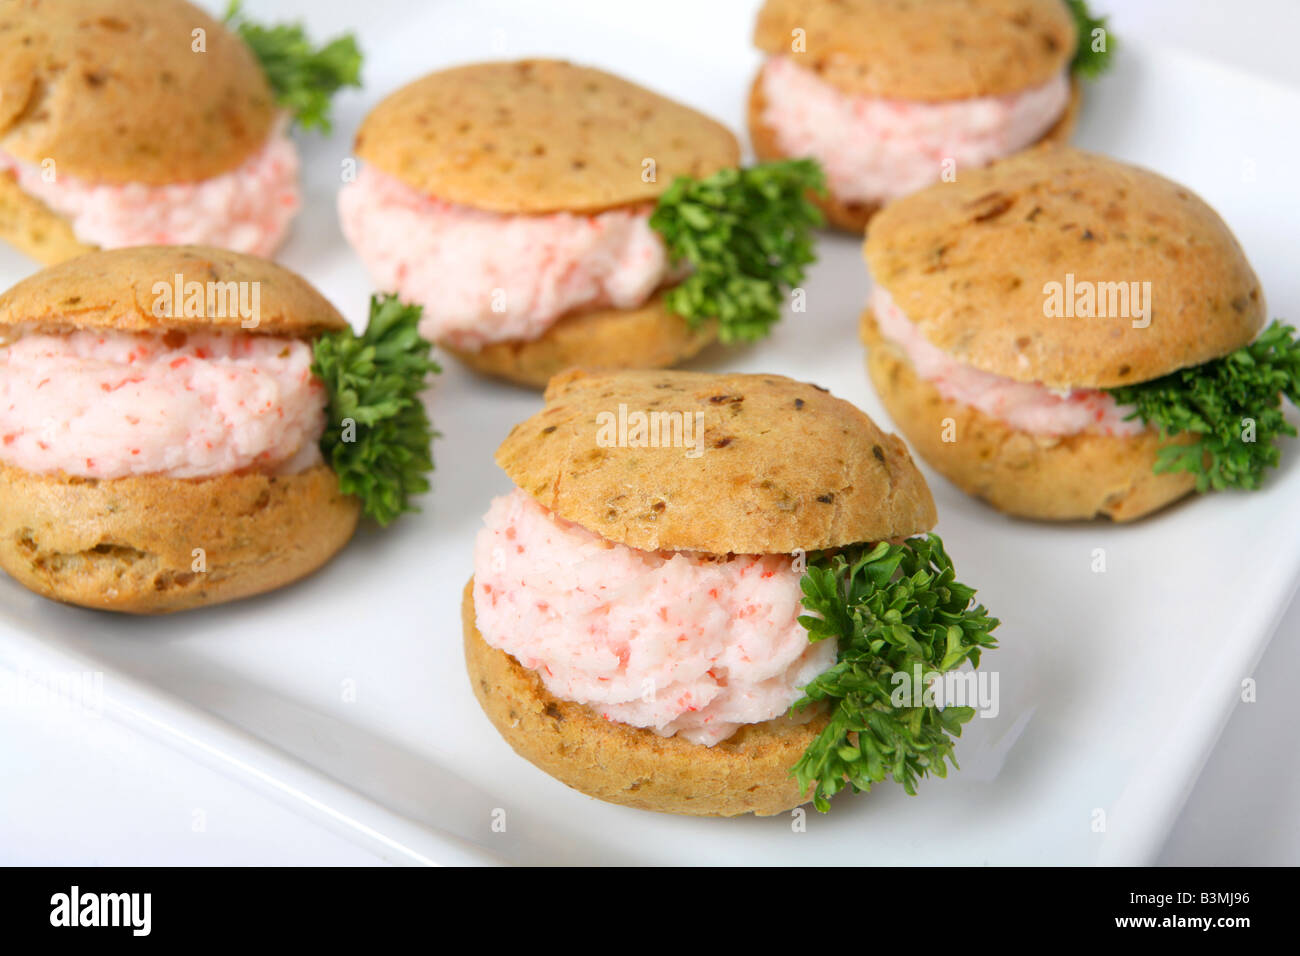 A pureed prawn meat filling in small brown bread canapes on a plate - Stock Image